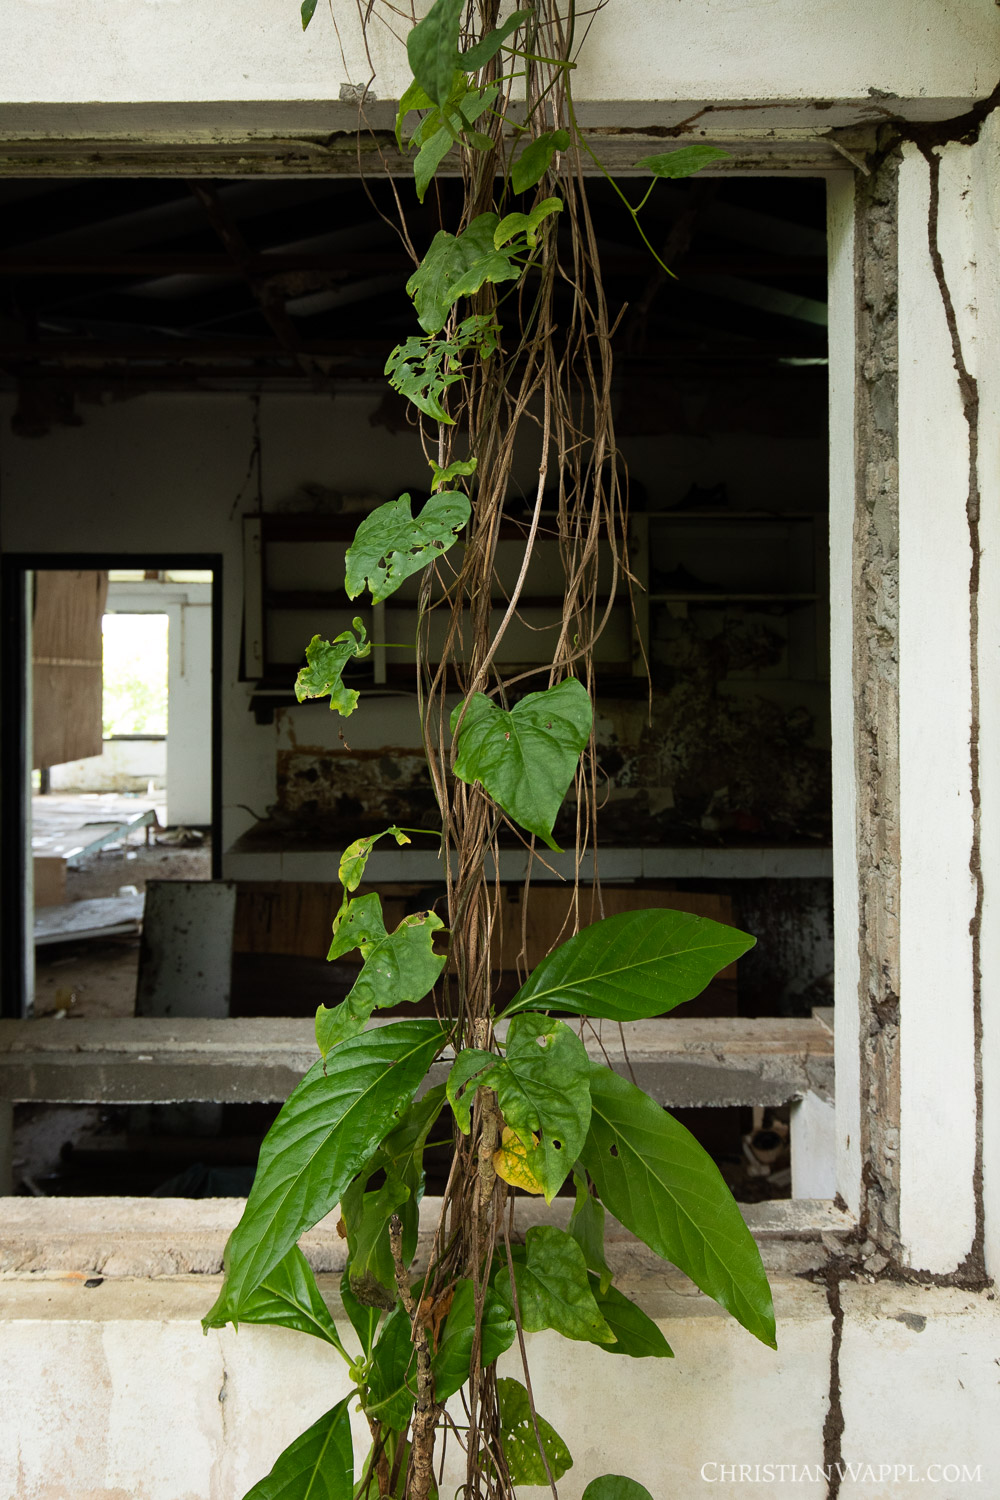 Vines growing in front of a window of a diplomat's villa, Grenada